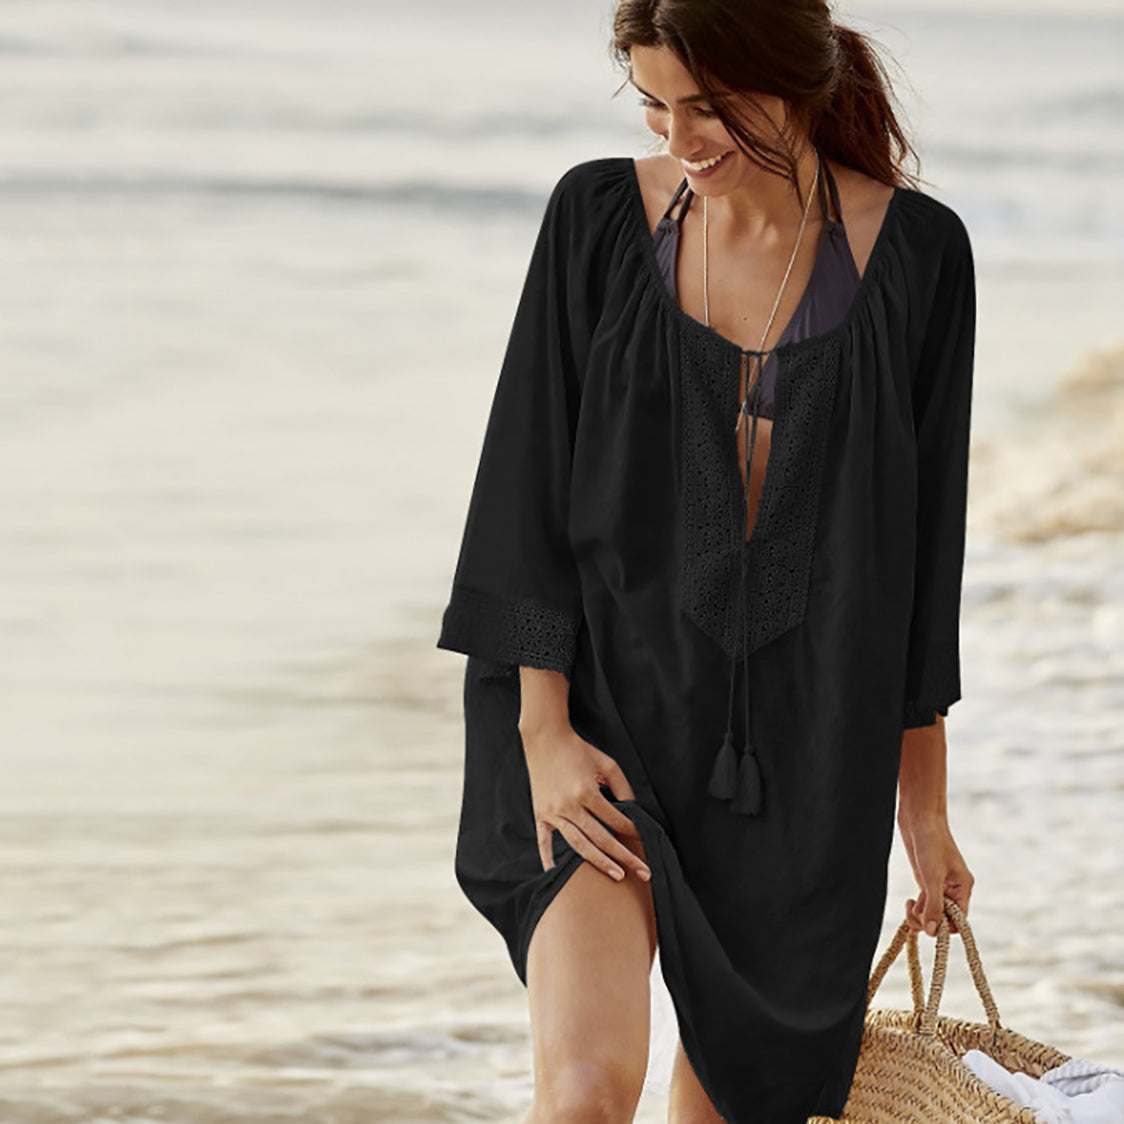 MilkySkinForever Women Swimsuit Sexy Tassel Kaftan Tunic Dress Summer Solid Color Beach Cover Up